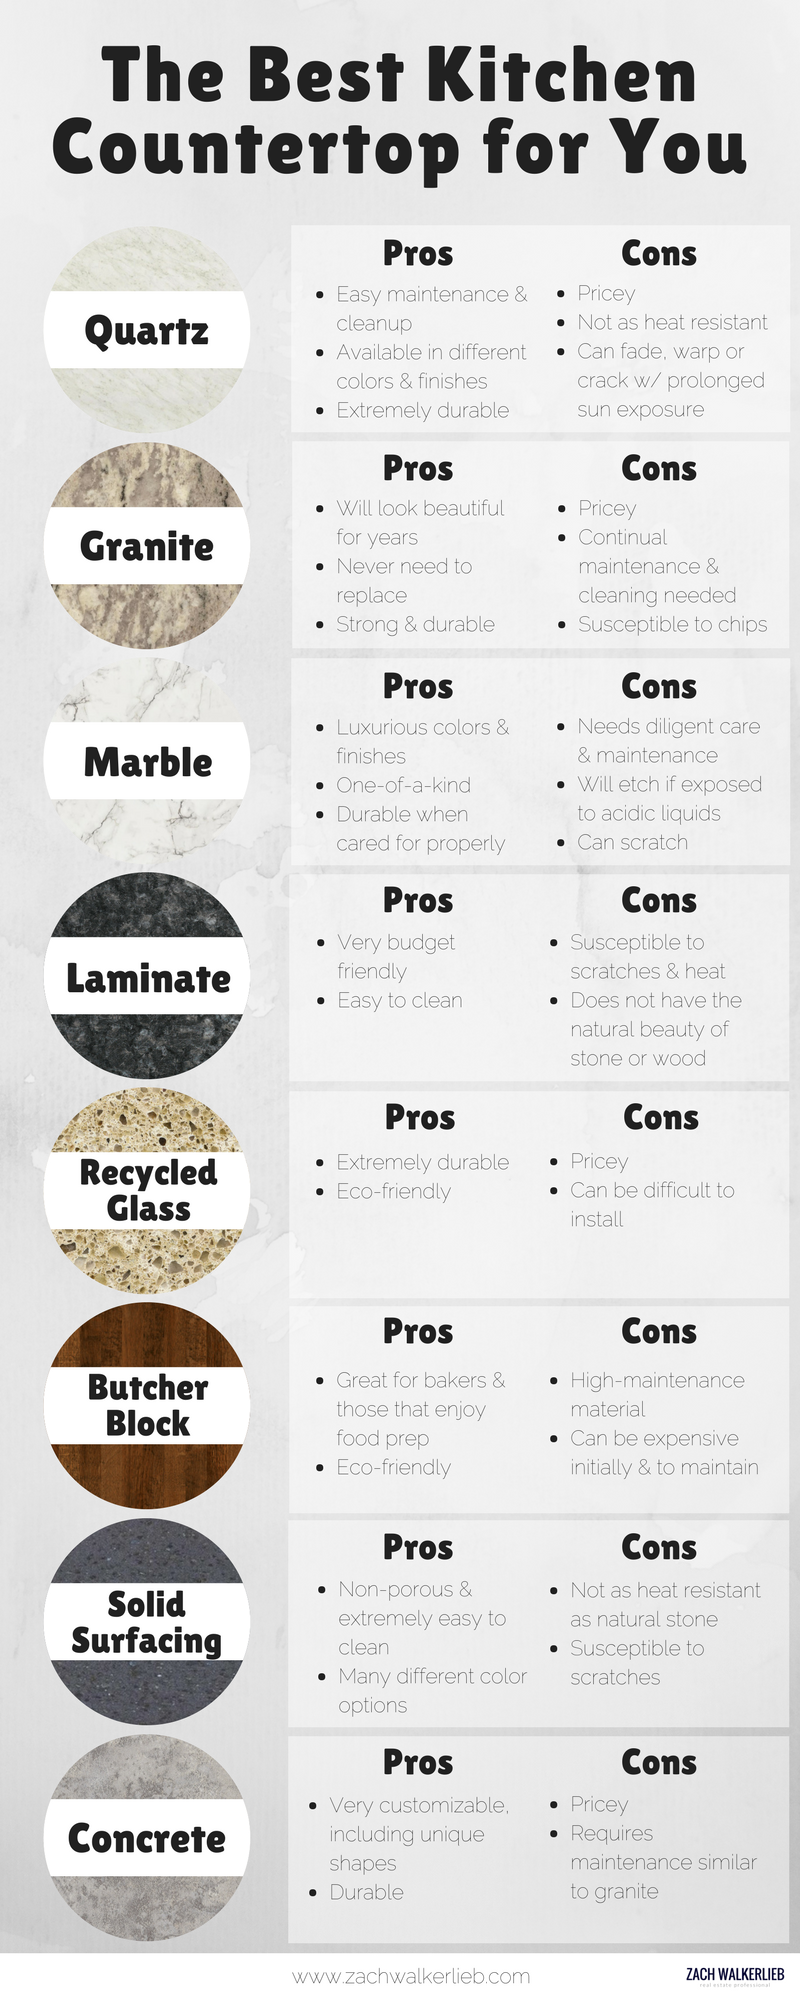 Top, popular countertop materials, pros and cos, quartz, granite, marble, laminate, recycled glass, butcher block, solid surfacing and concrete